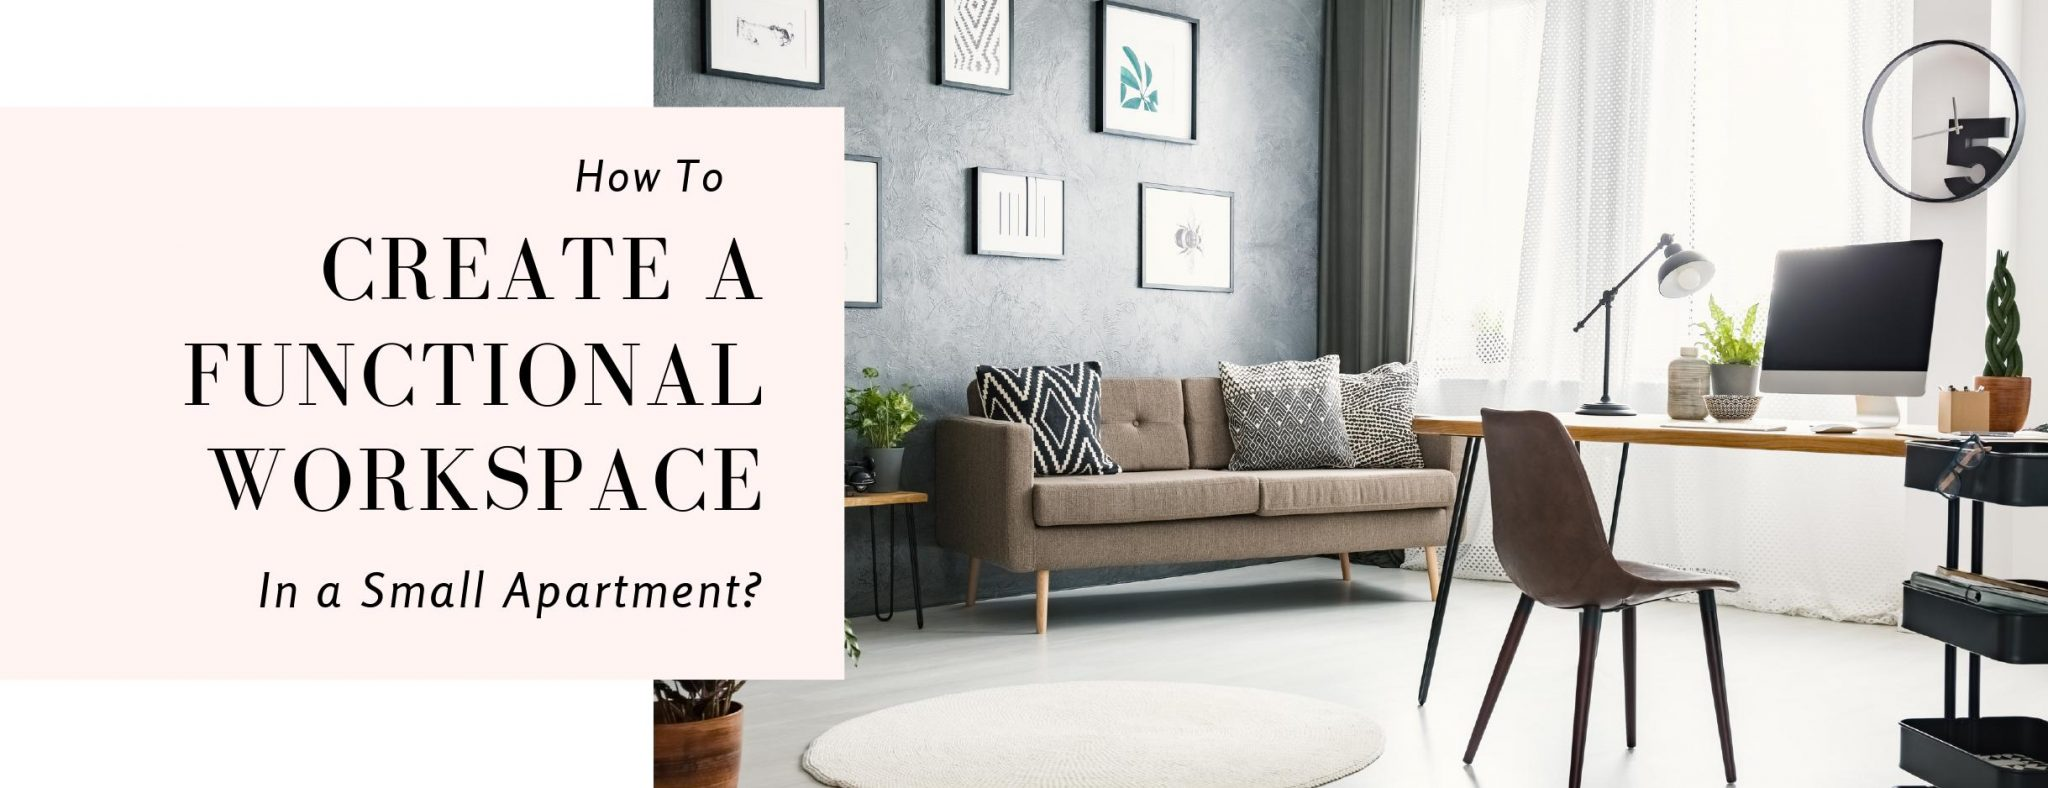 create a functional workspace in a small space 1